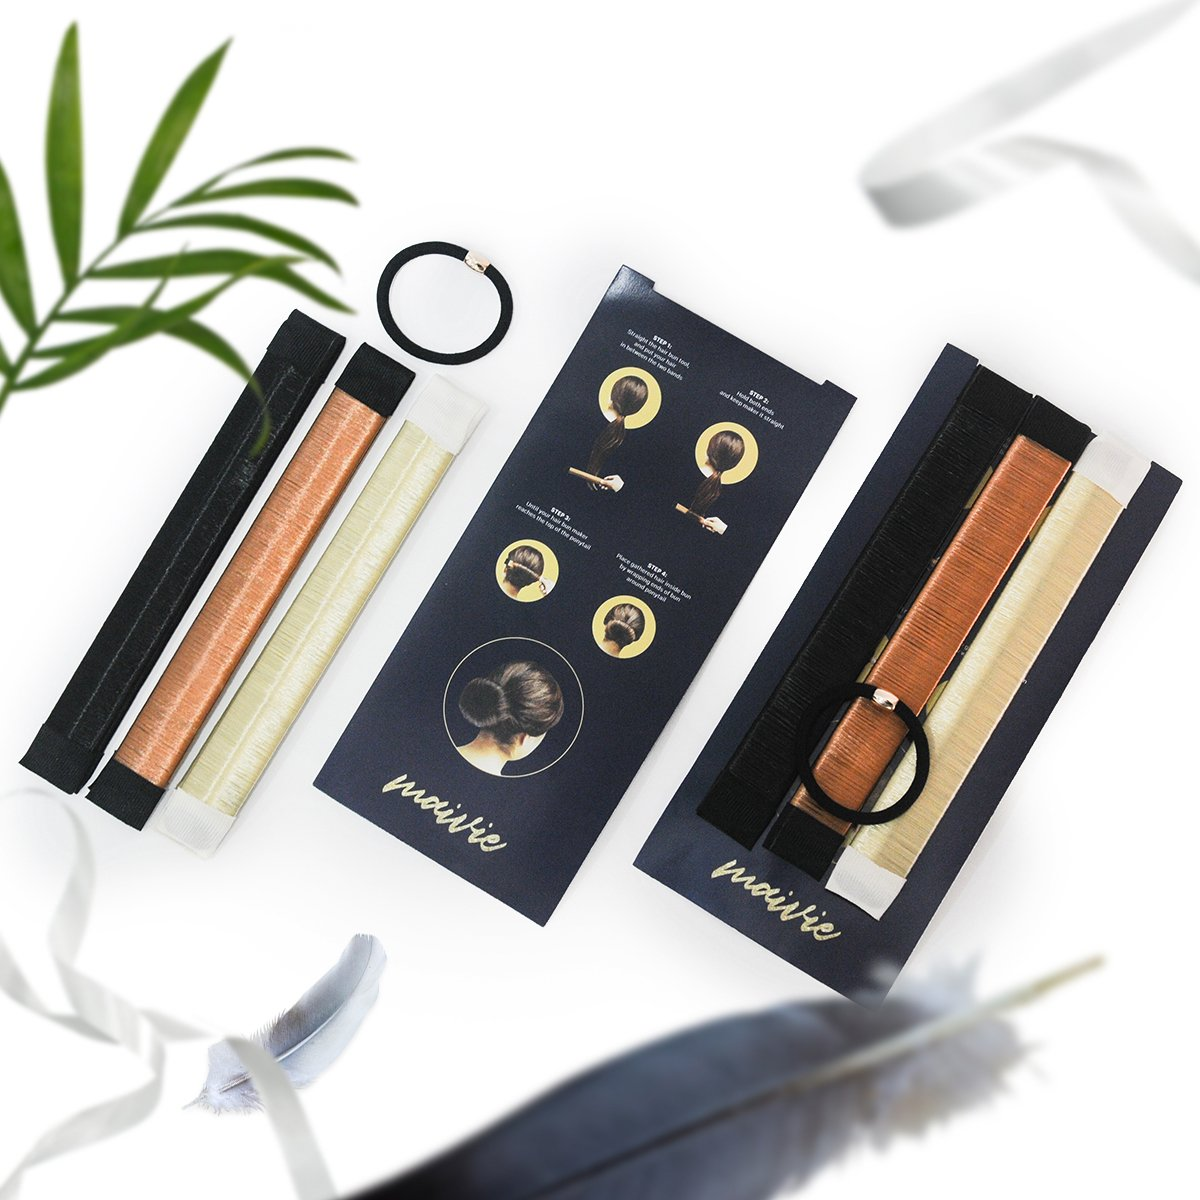 Hair Buns Maker - Fast Messy Perfect Sock Bun Magic Curler Clip French Donut Twist Shaper - Easy DIY Accessories Styling Tool for Women Girls - 3 PCS (Black, Blonde, Brown color) and 1 Hair Tie by Maivie (Image #9)